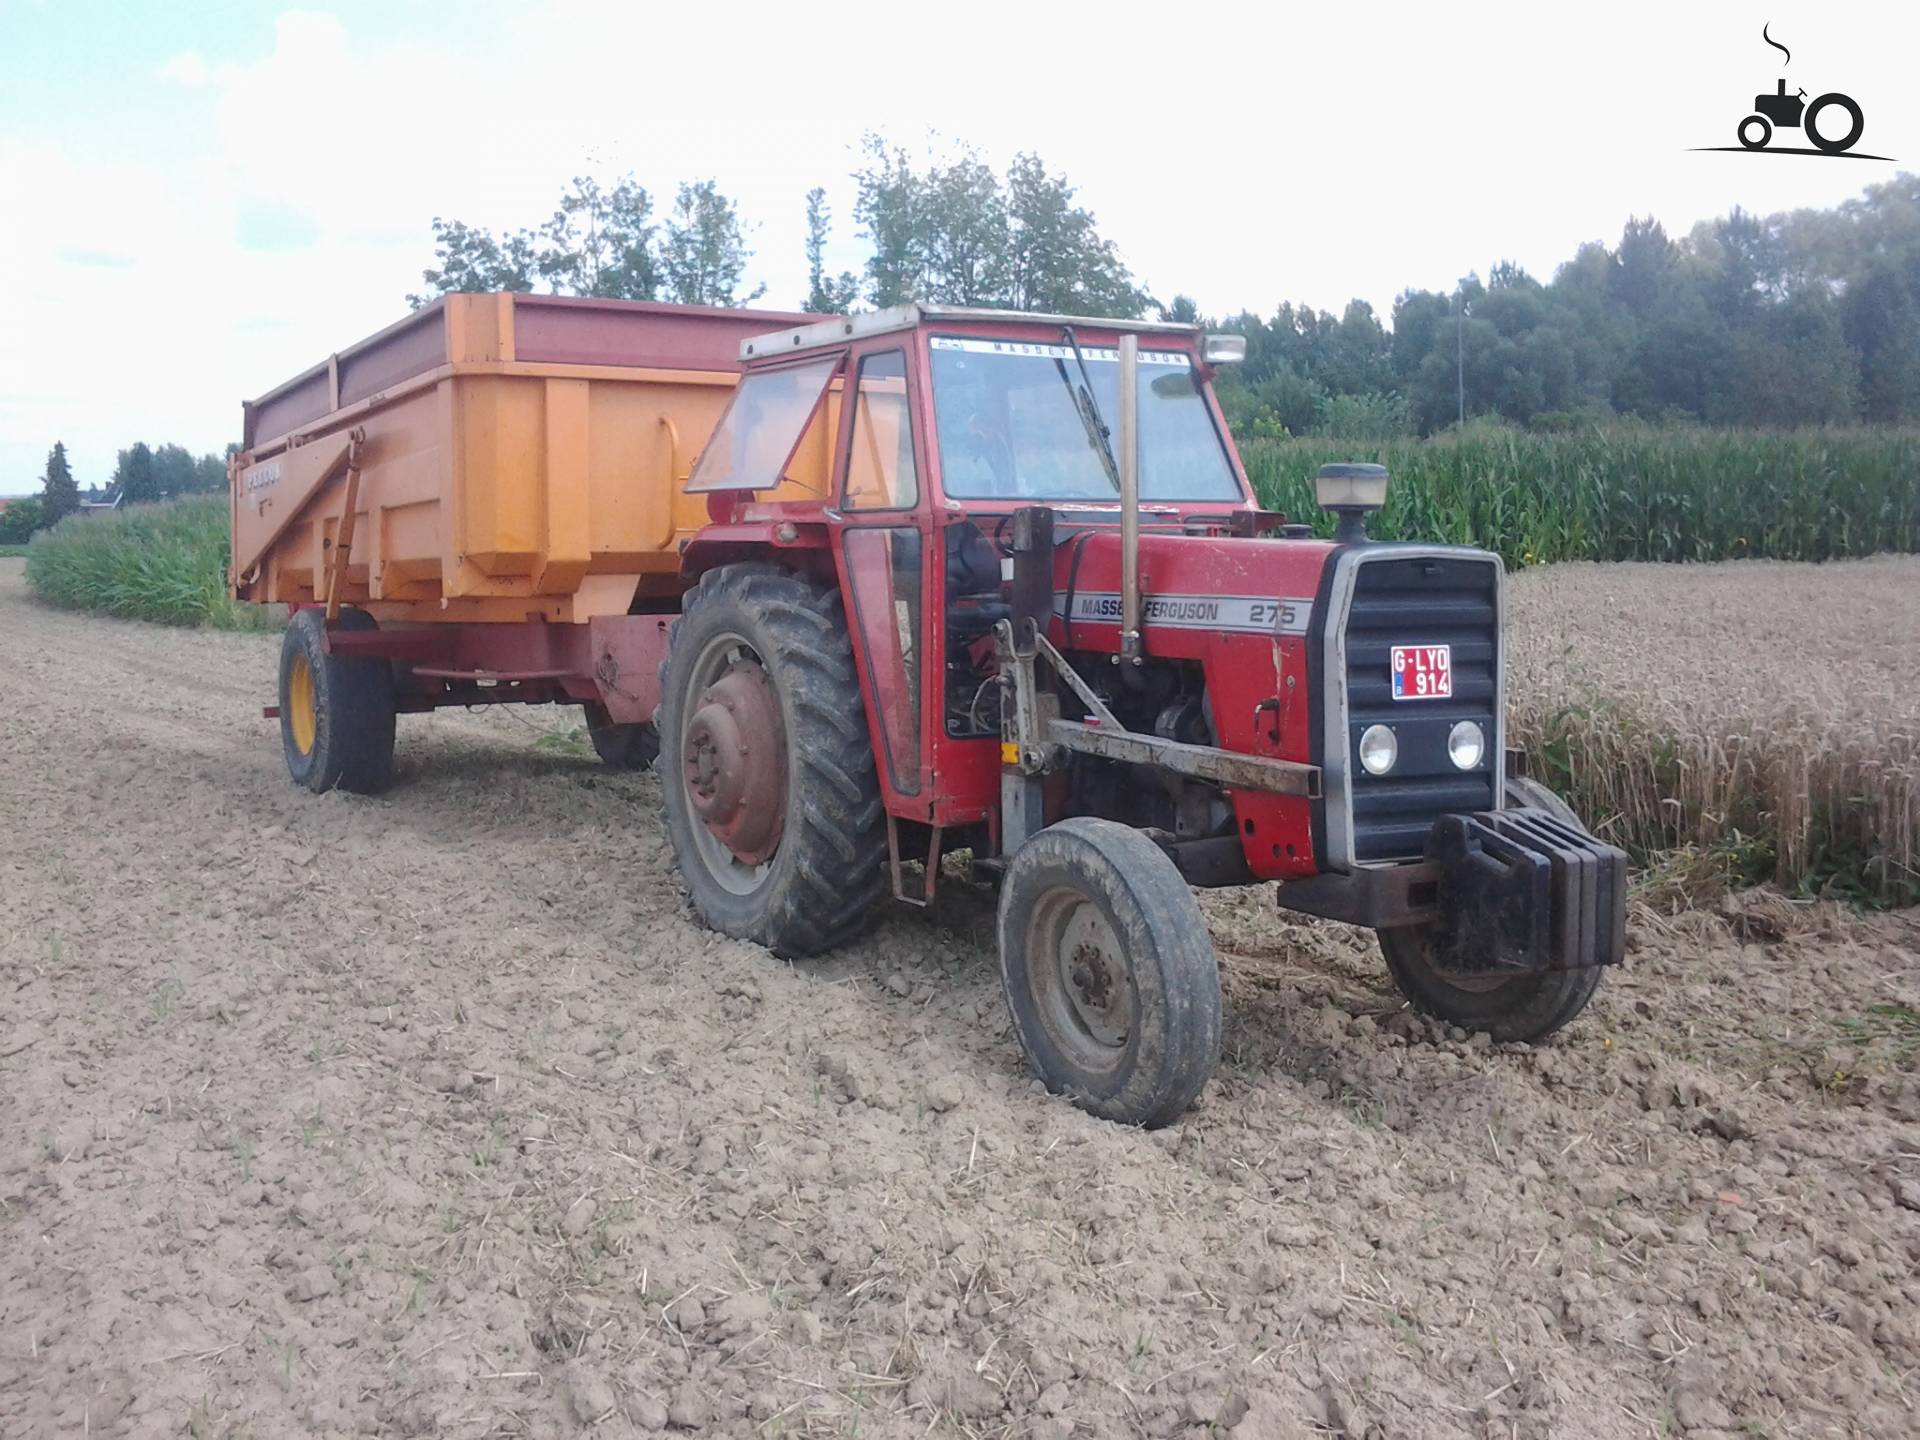 Mf 275 Tractor Data : Massey ferguson specs and data everything about the